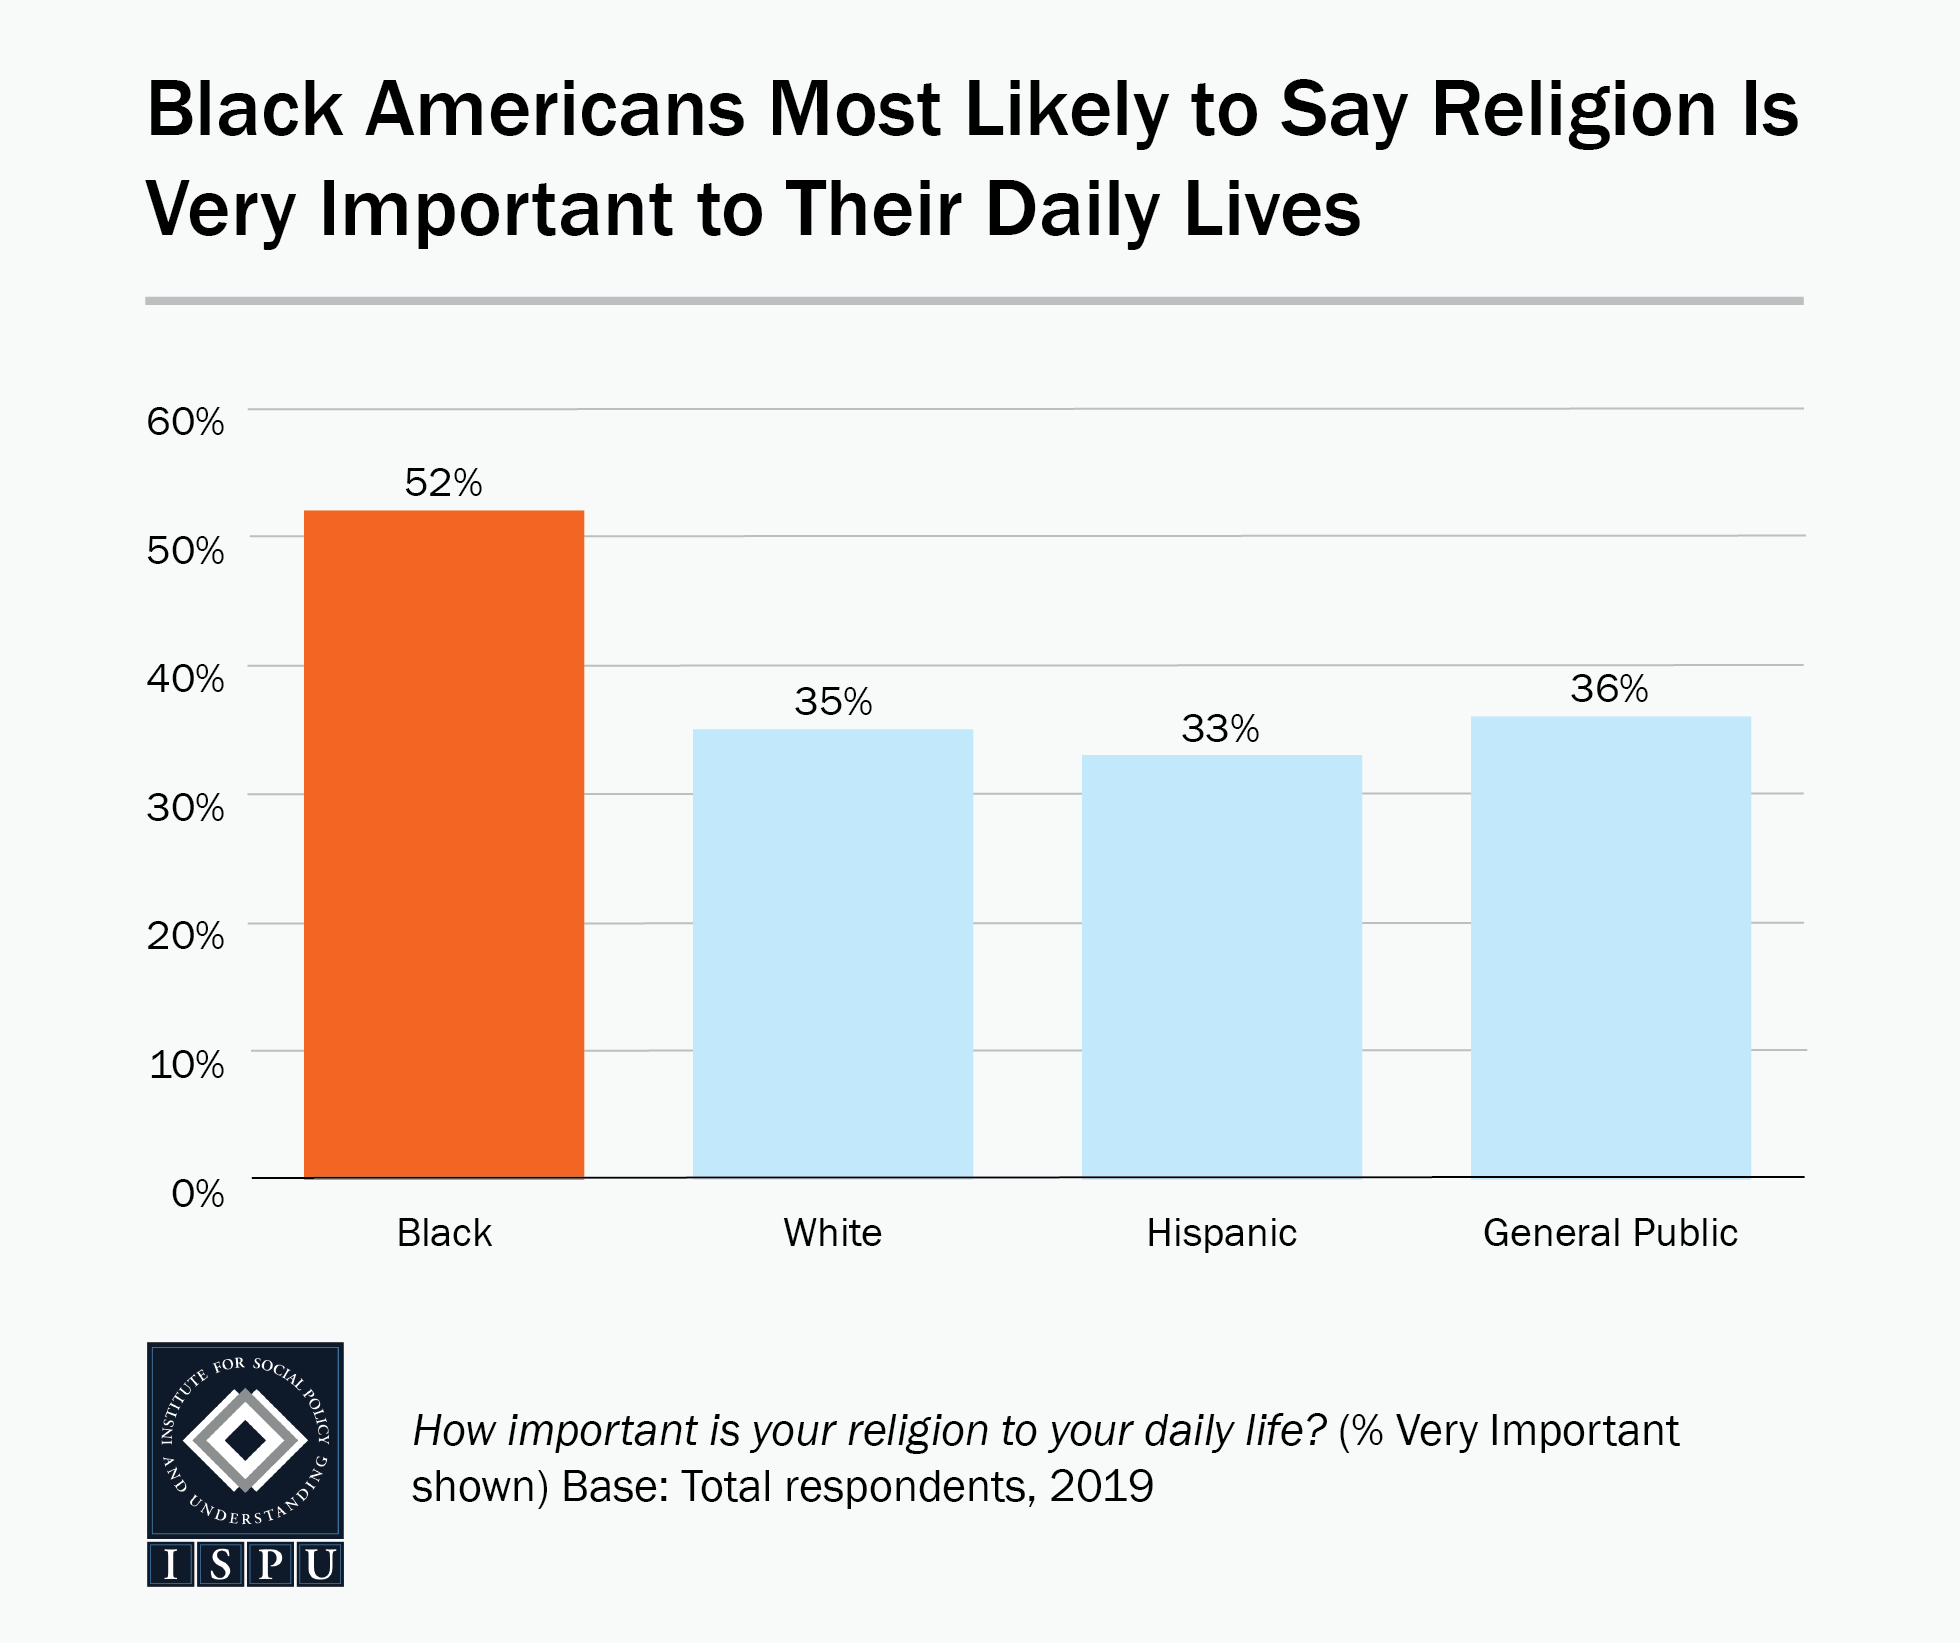 Bar graph showing that Black Americans (52%) are most likely to say religion is very important to their daily lives